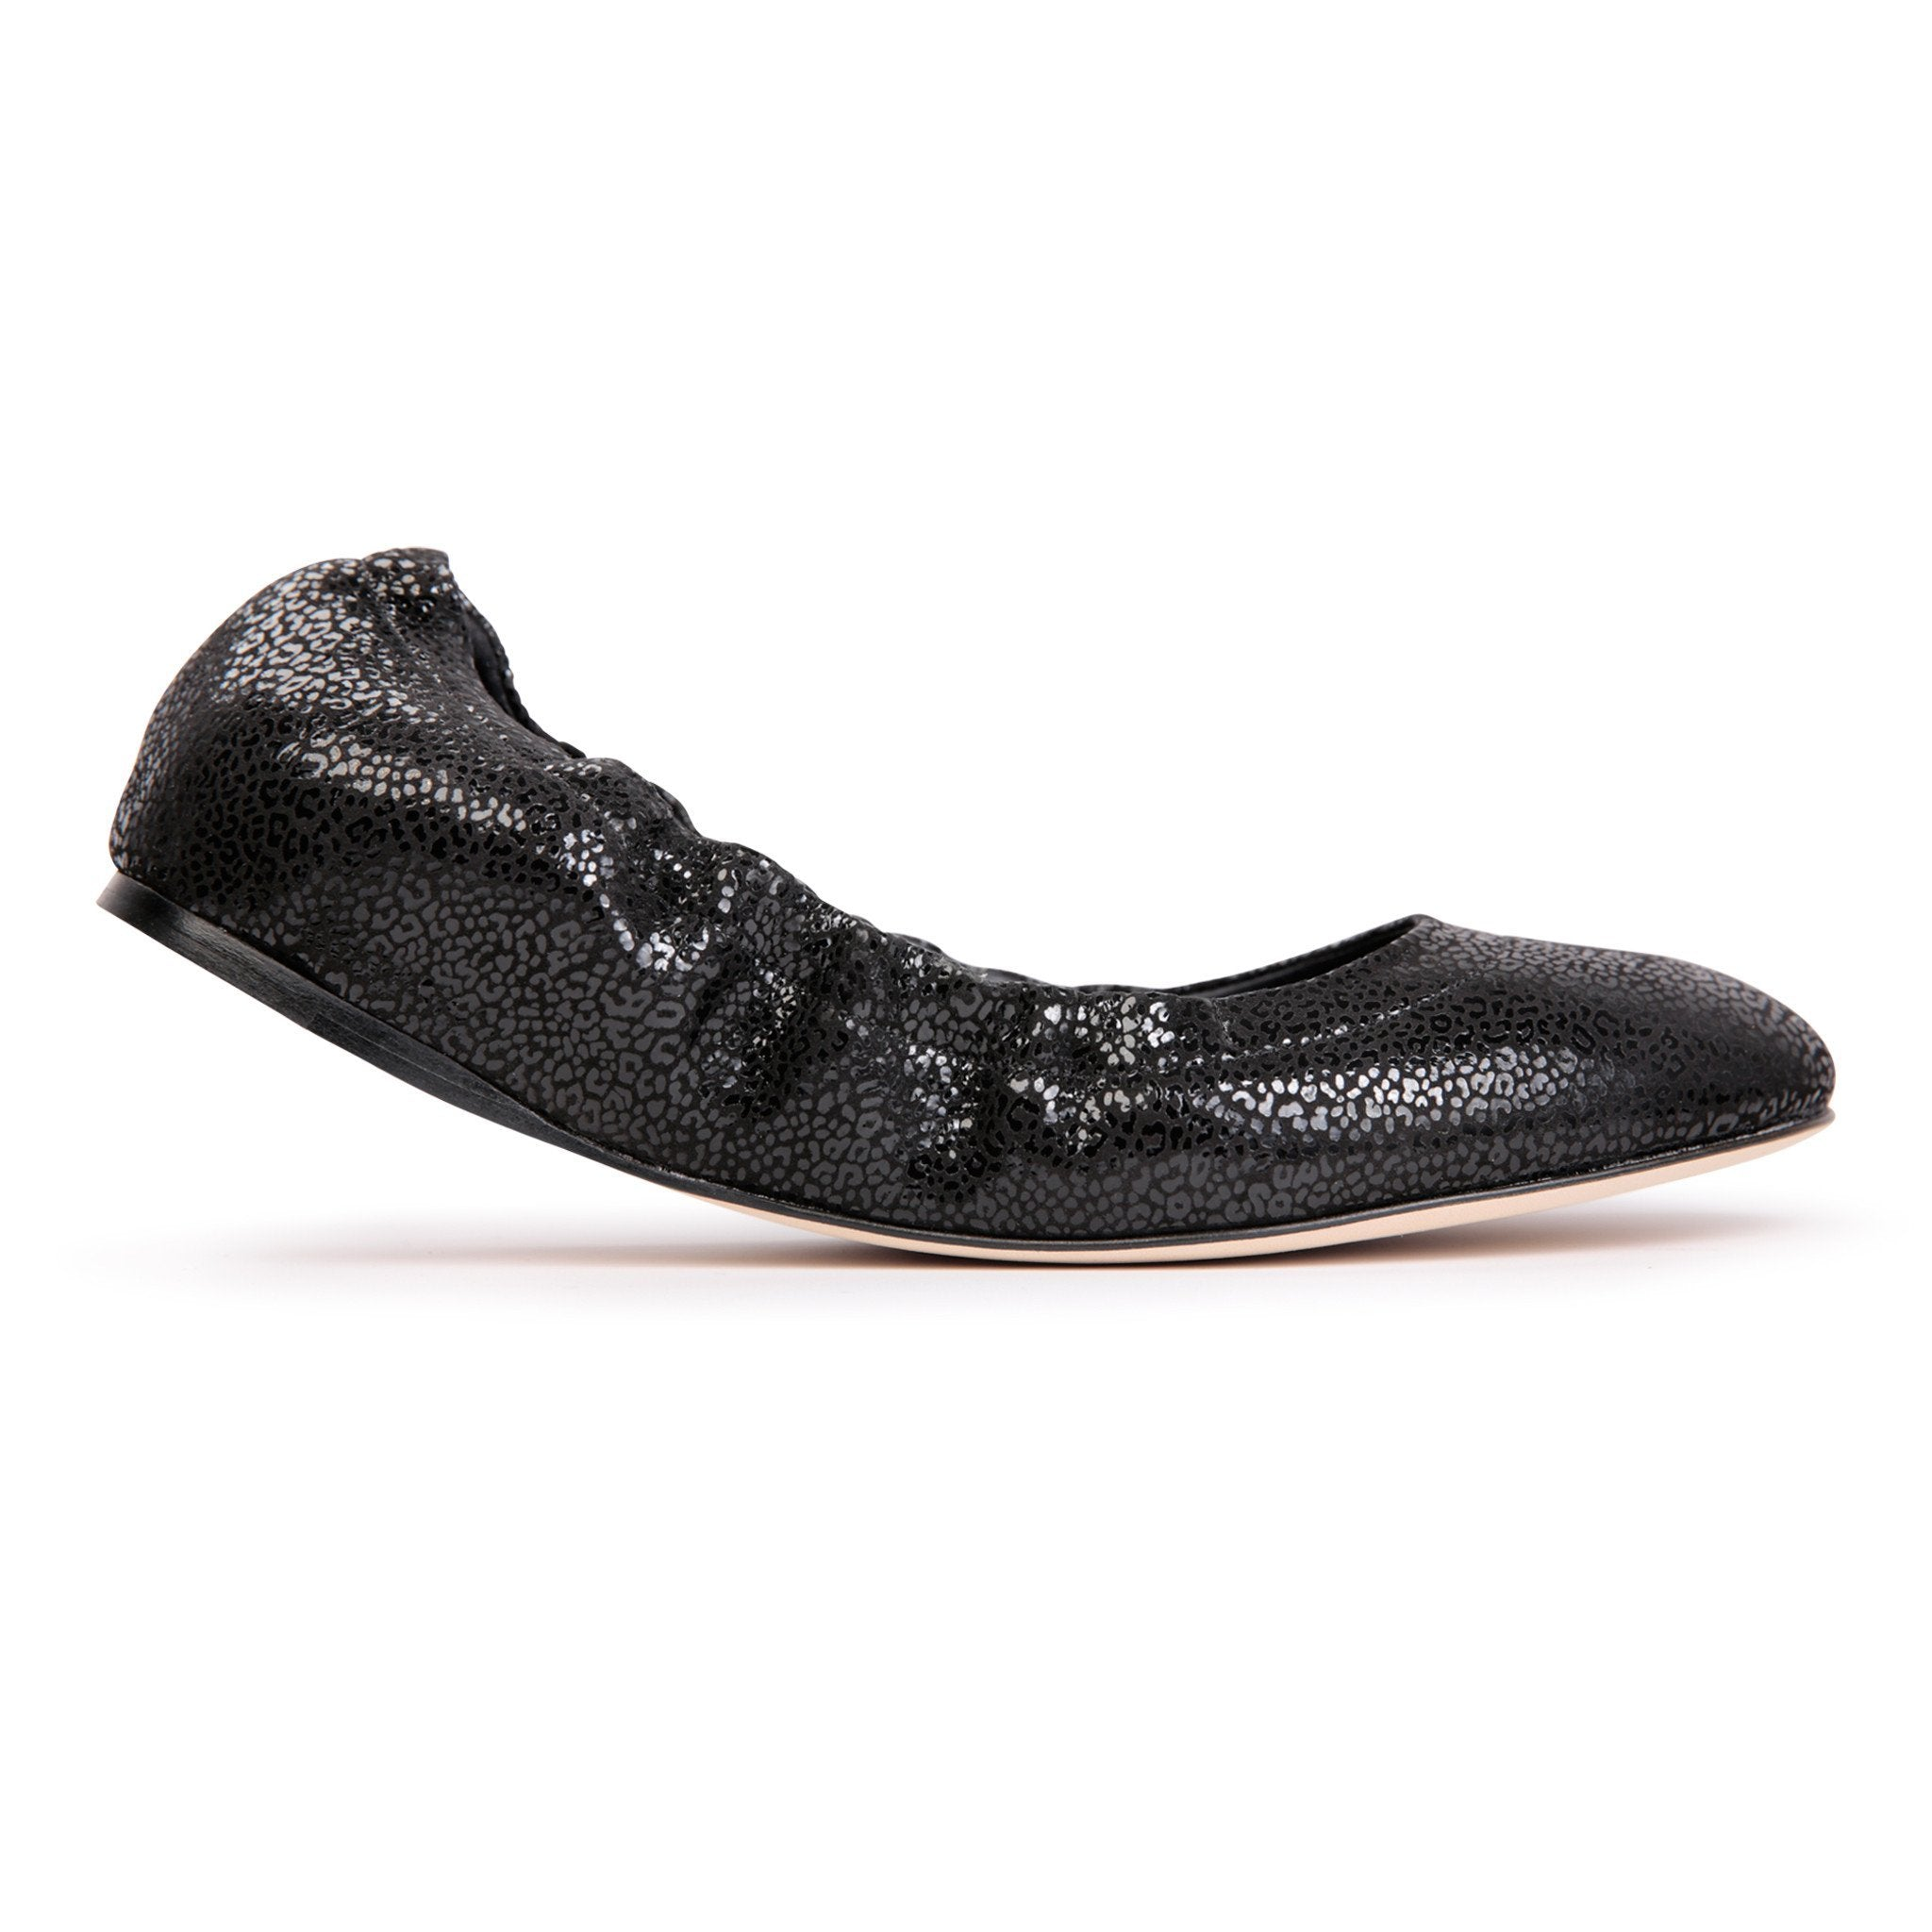 PORTOFINO - Savannah Nero, VIAJIYU - Women's Hand Made Sustainable Luxury Shoes. Made in Italy. Made to Order.